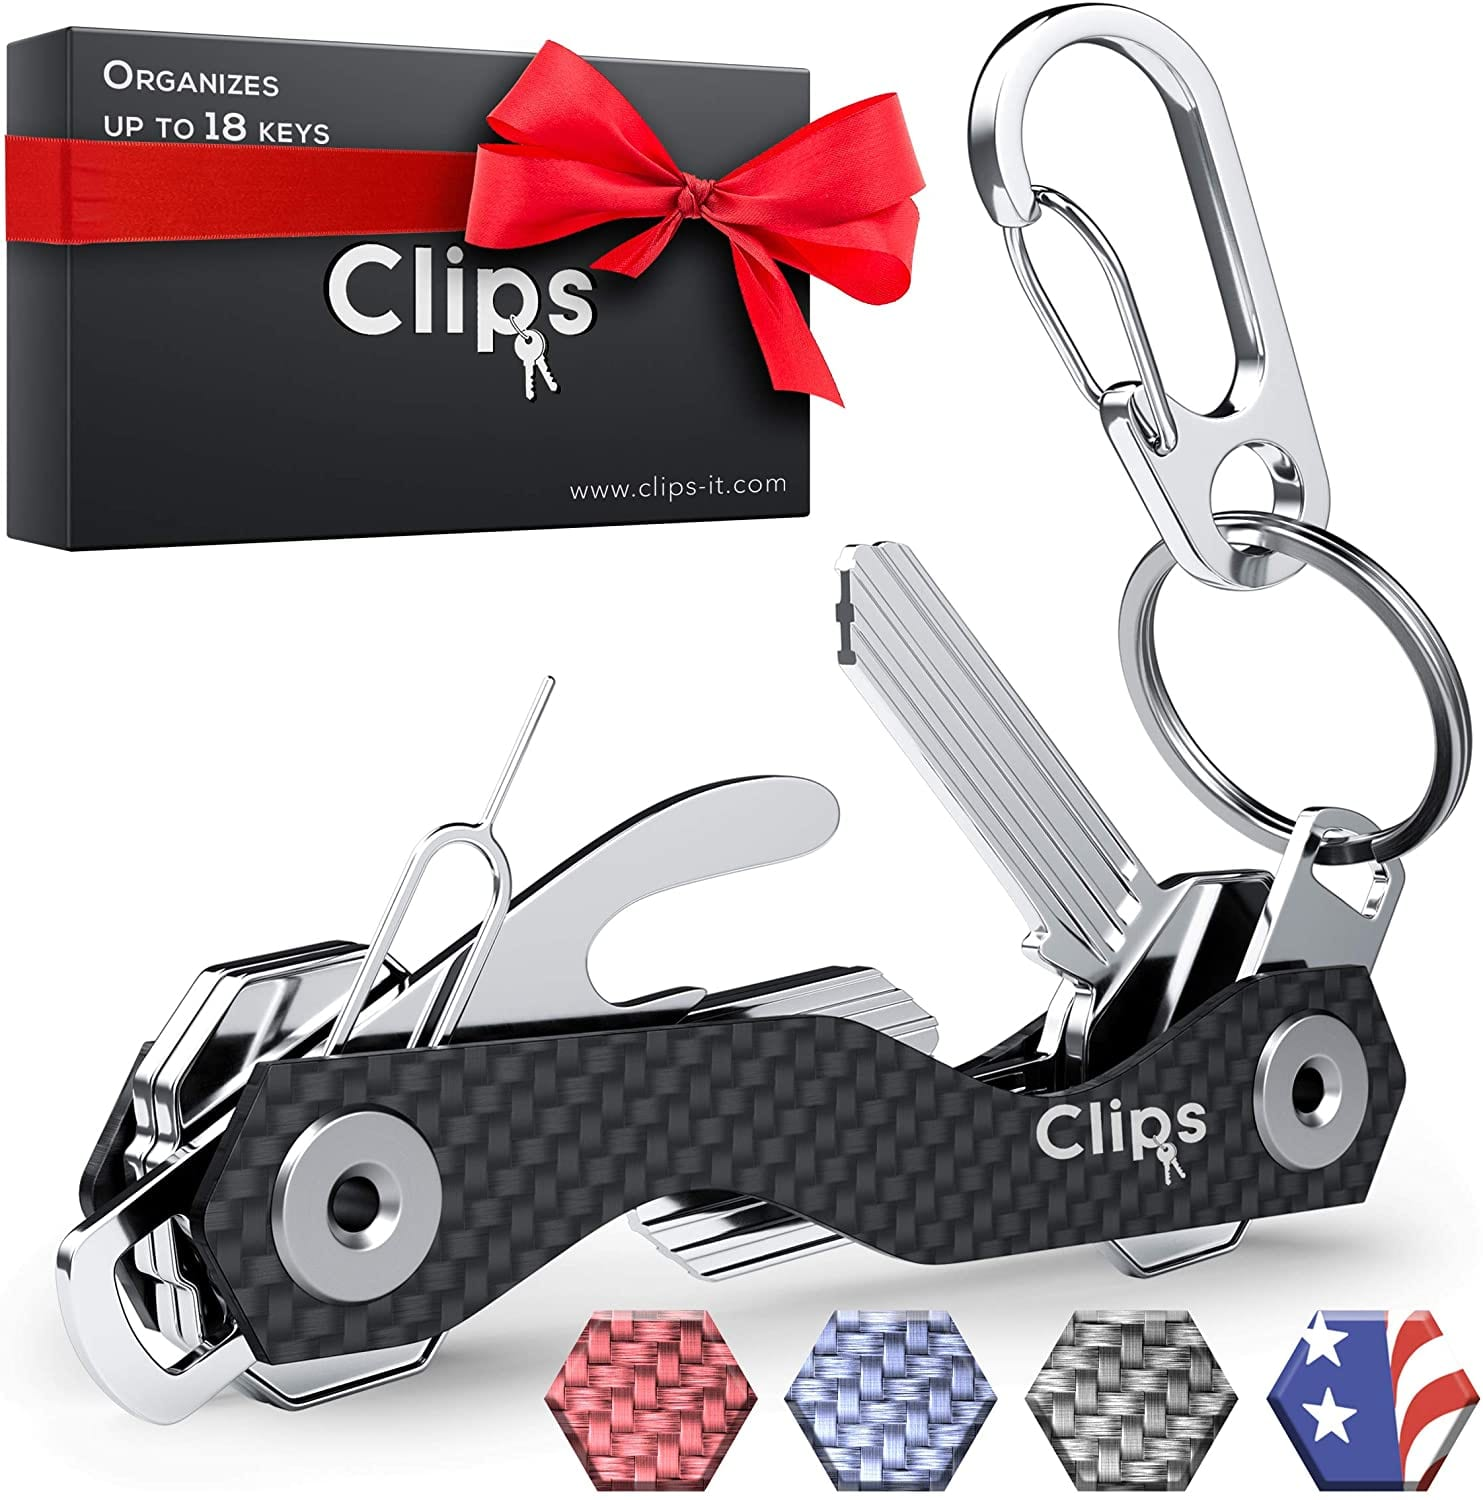 key organizers are best gifts for preppers